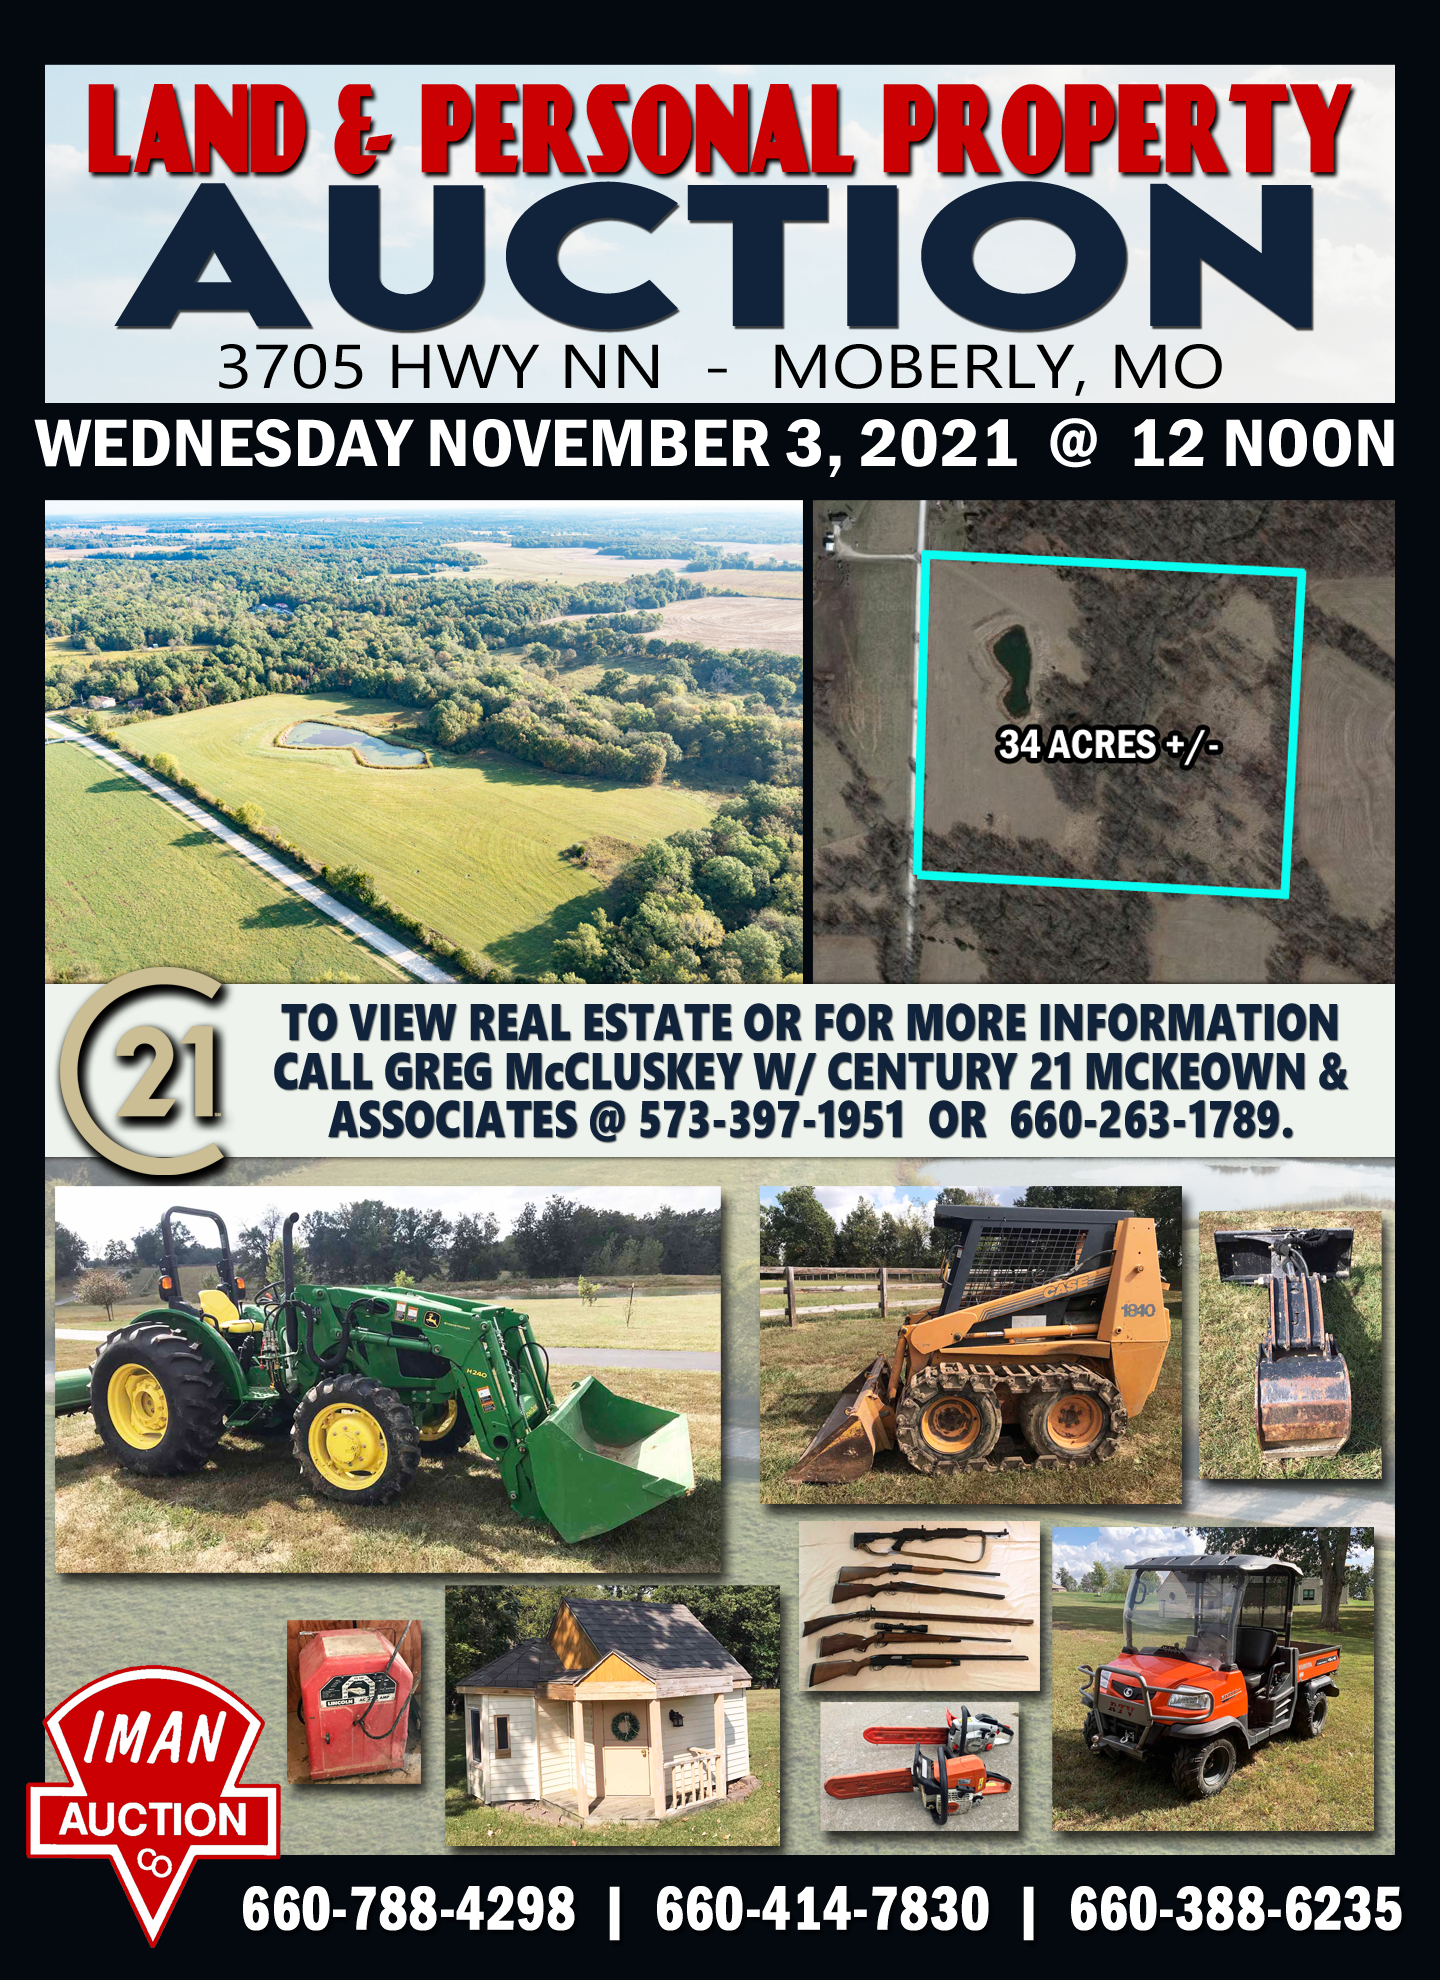 LAND & PERSONAL PROPERTY AUCTION